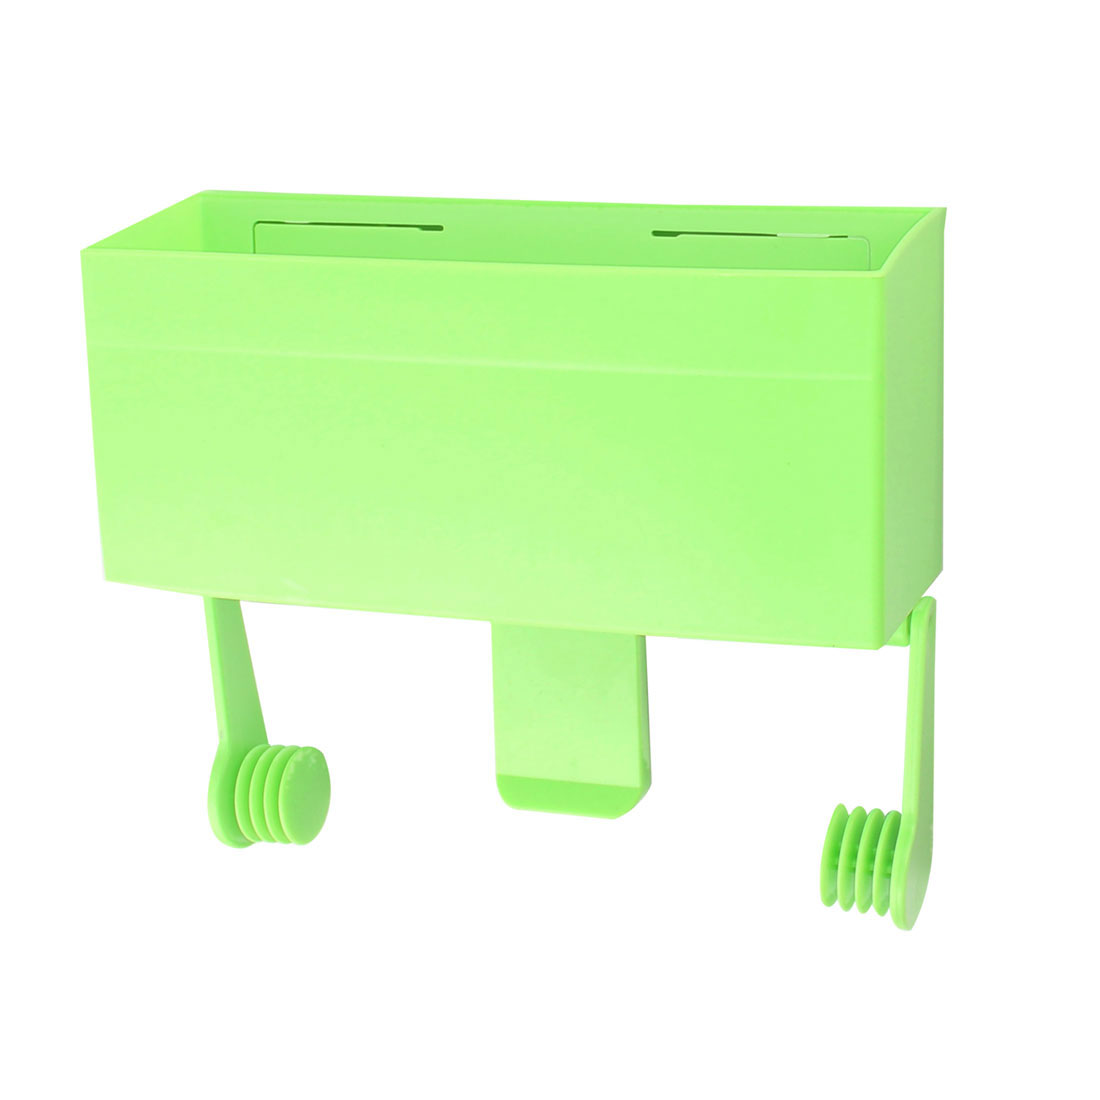 Household Plastic Refrigerator Fresh Food Wrap Film Roll Bag Holder Storage Case Green